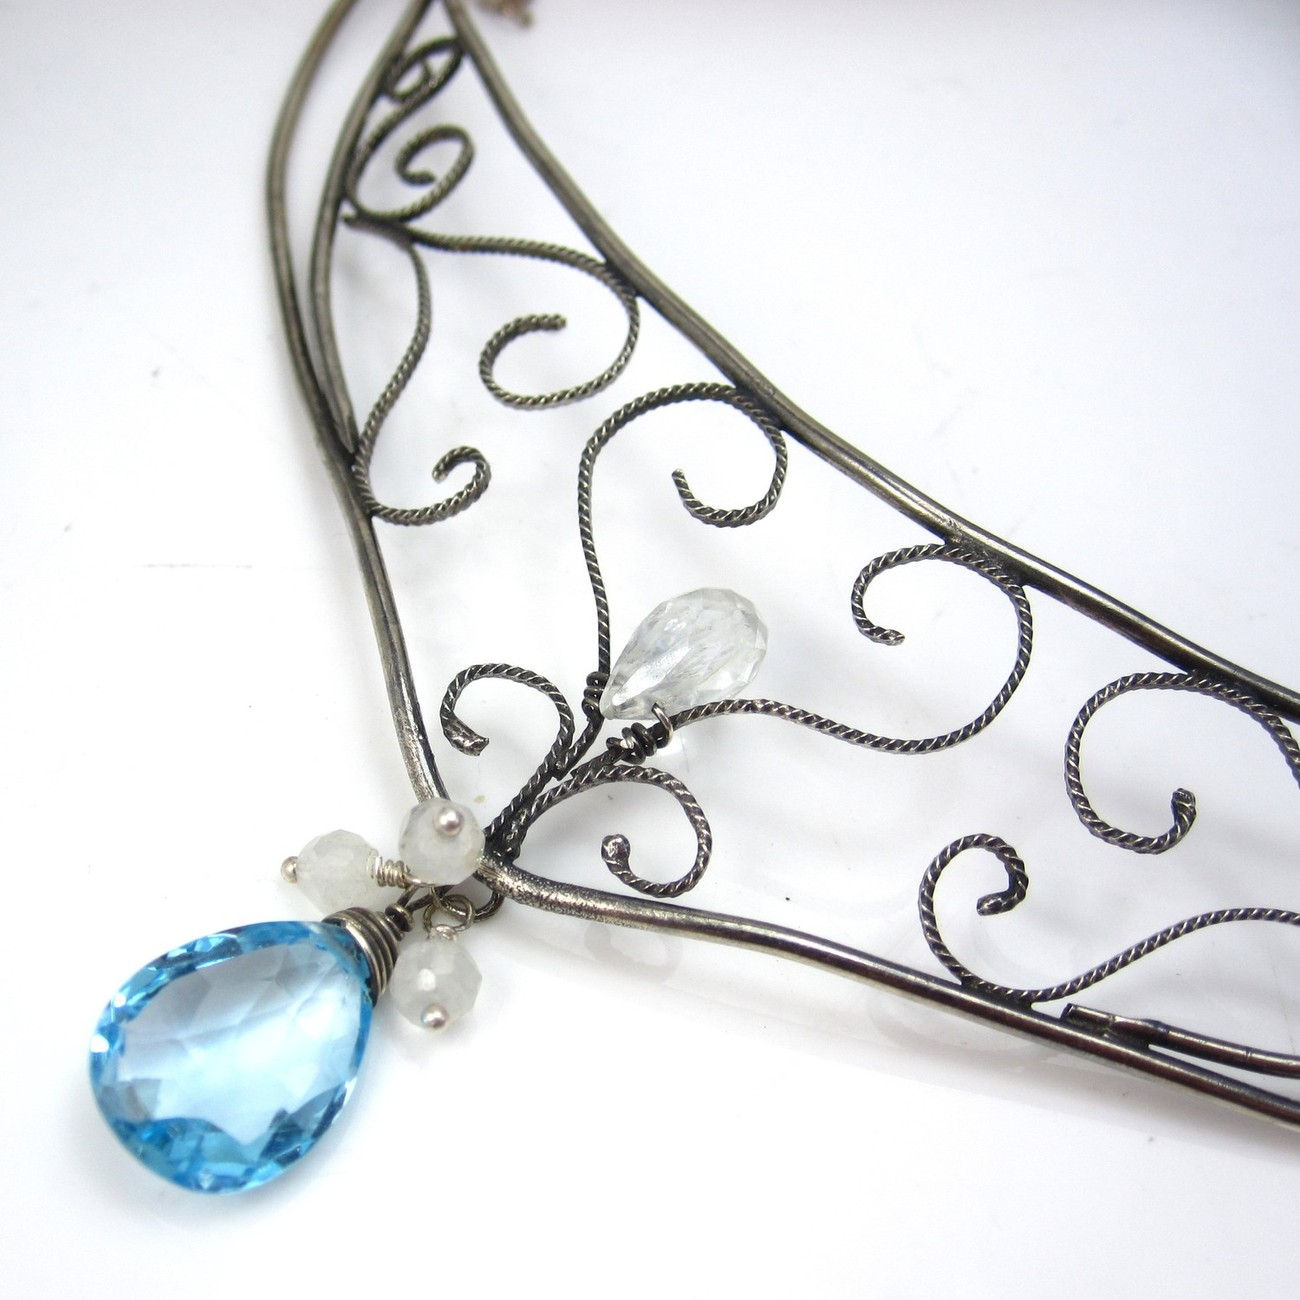 Filigree and Blue Topaz Necklace